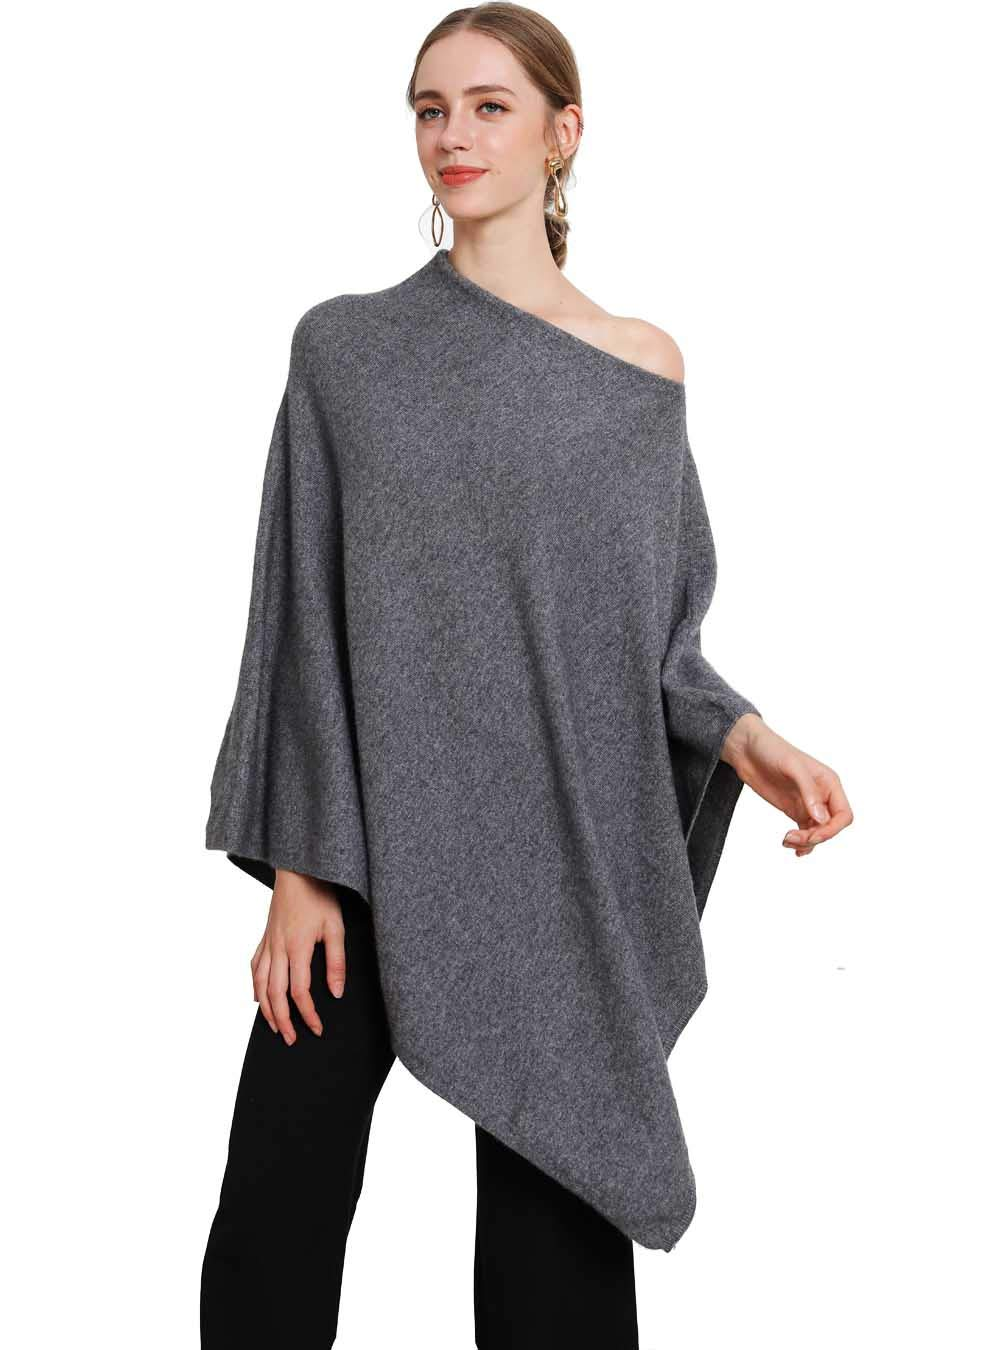 Pashmina Women 2019 New Pure Cashmere Scarf Cover Ups Autumn Winter High-End Luxury Oversized Ponchos Gray (Dark Gray, Free Size) by FINCATI